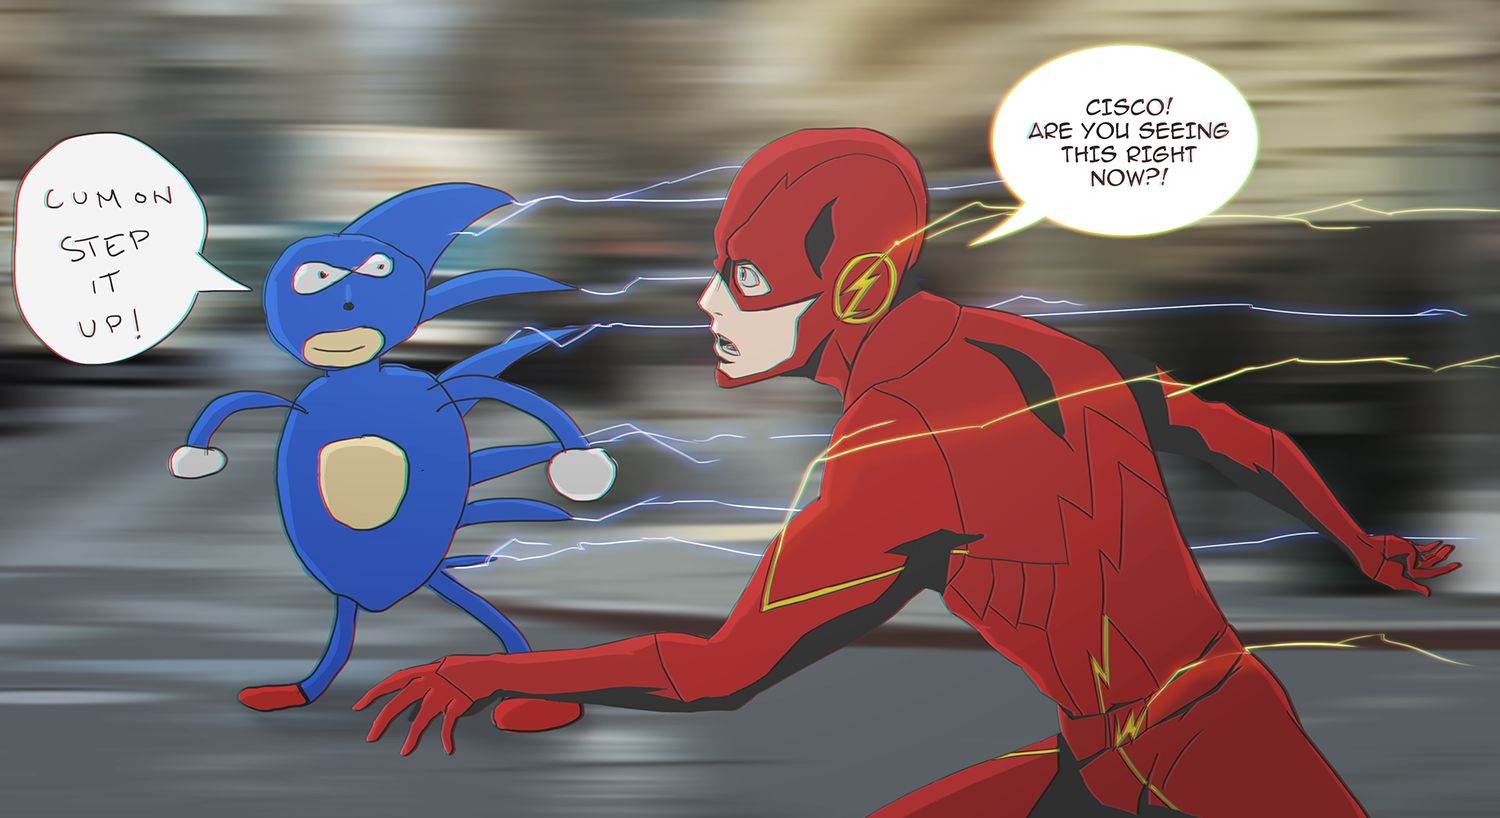 Sanic Is Coming By Fxnart On Deviantart